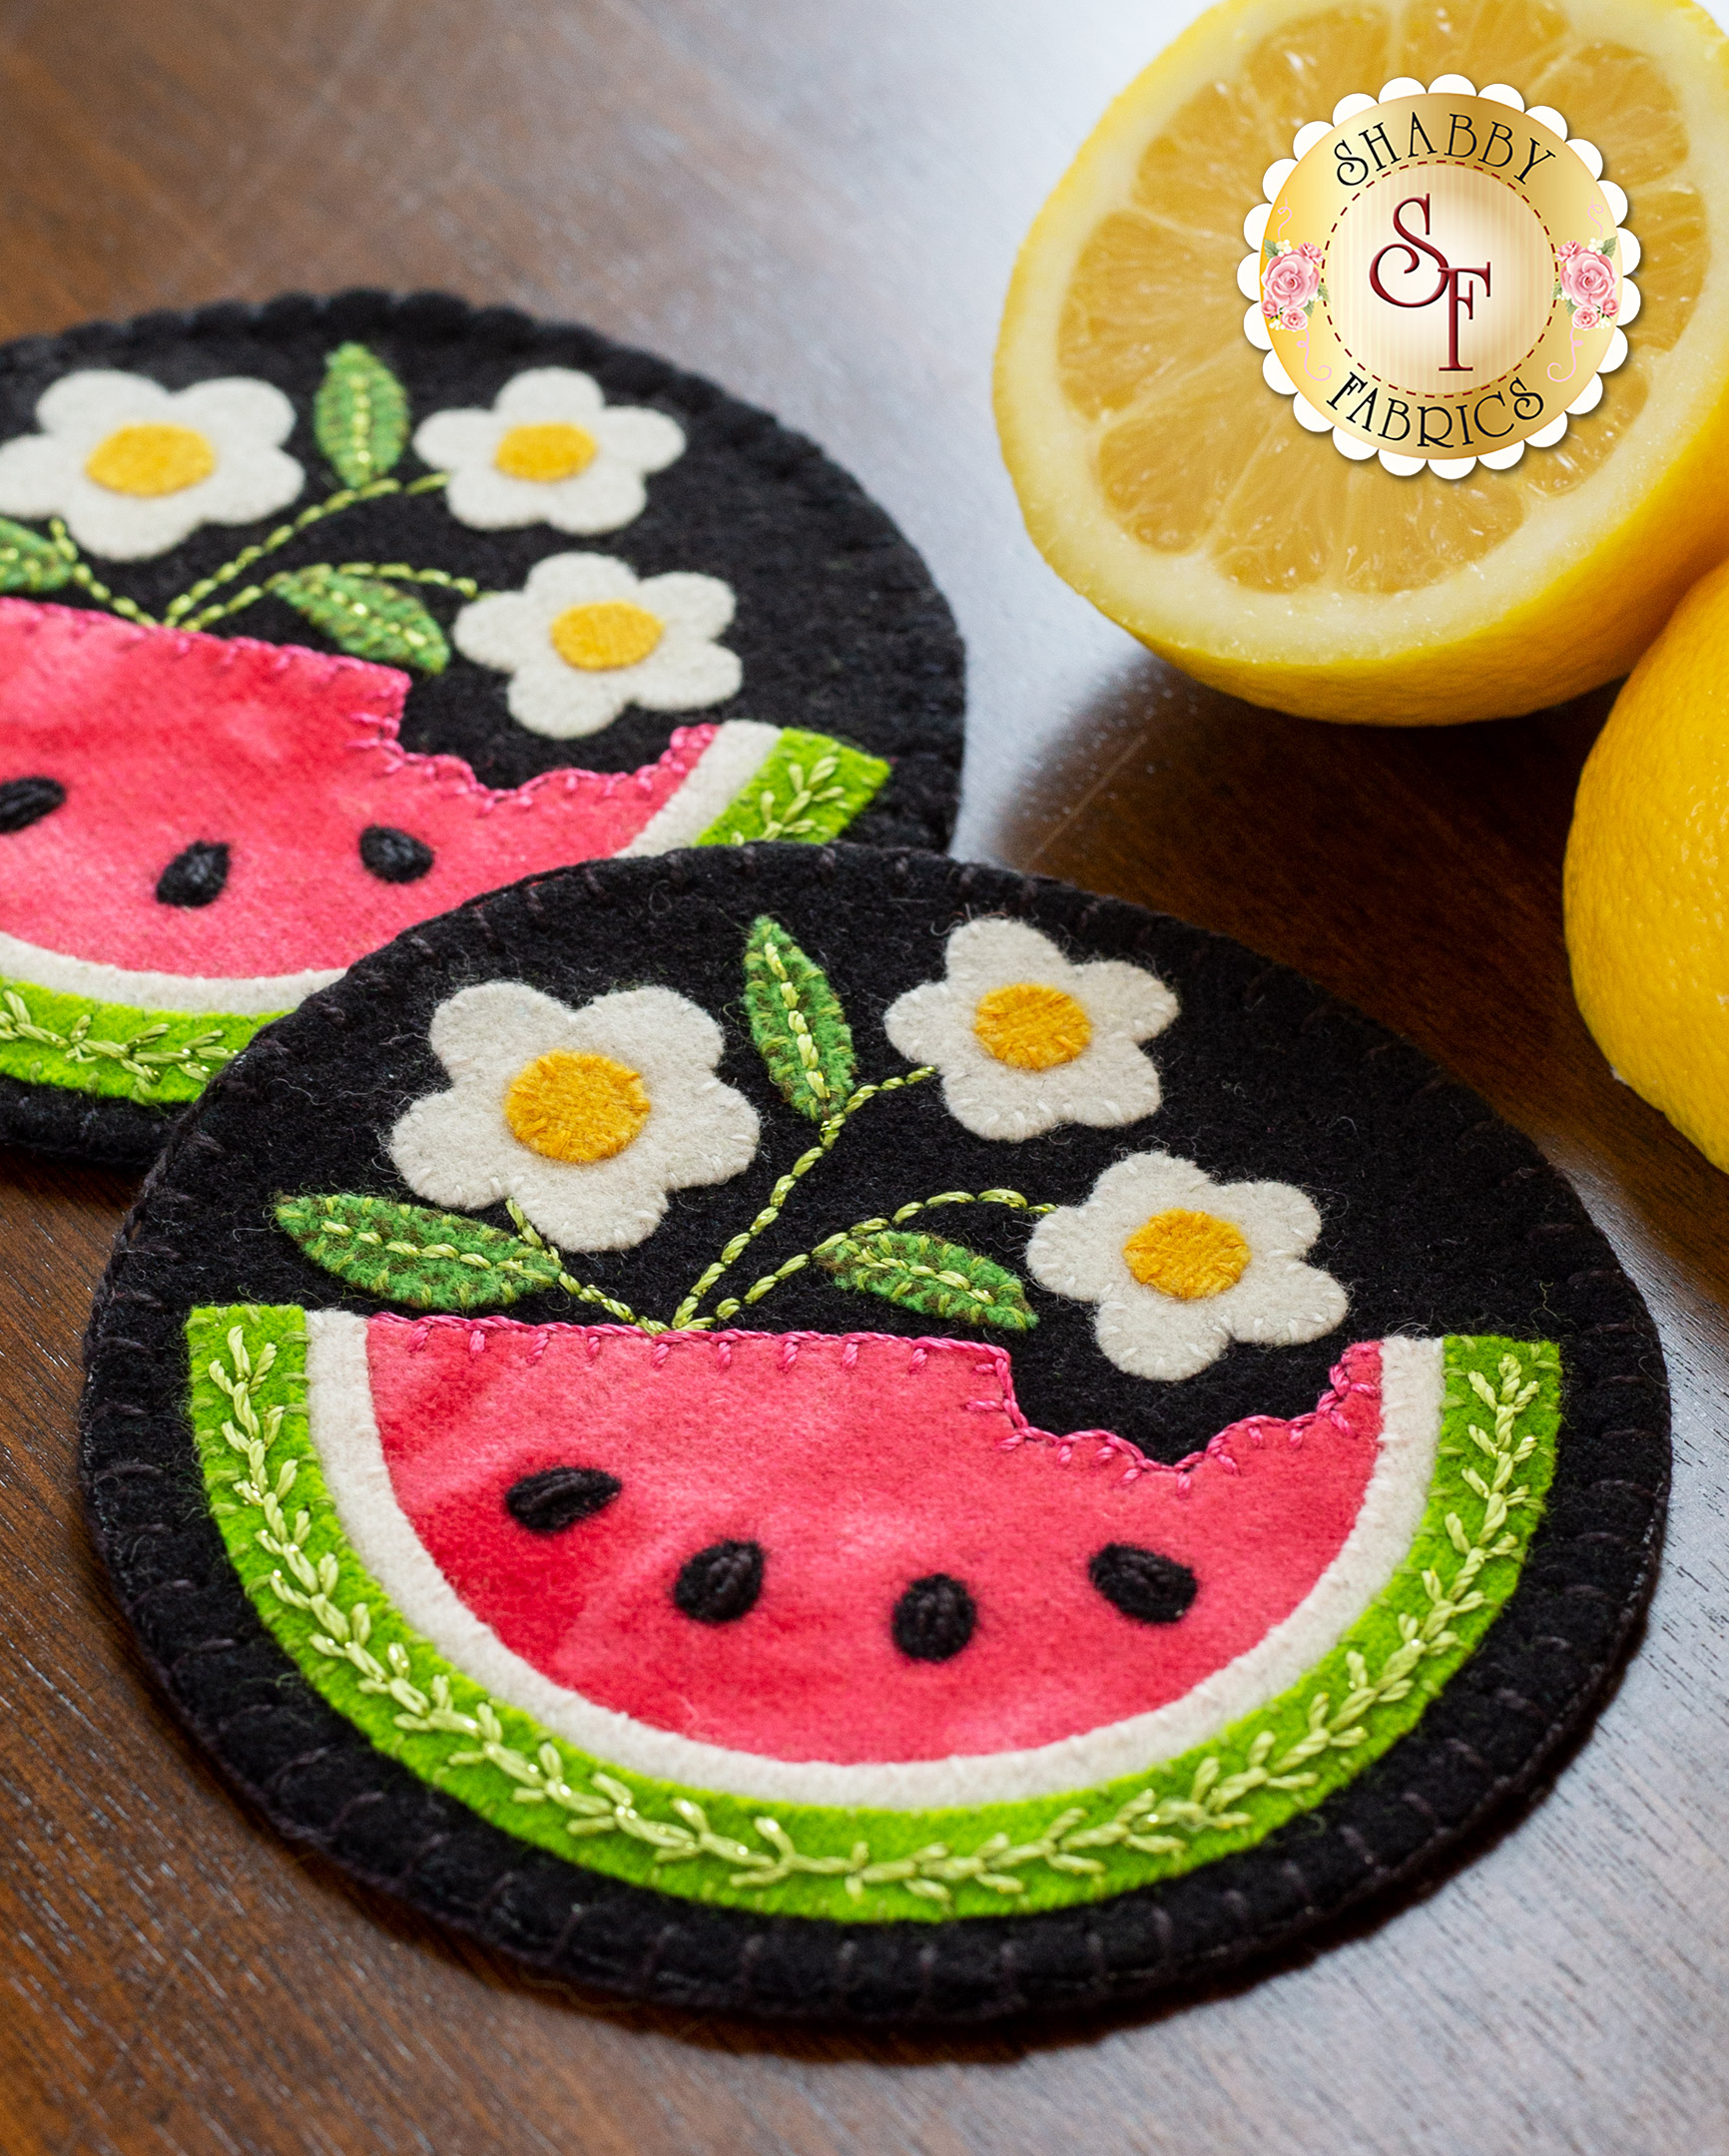 Wool coasters with watermelon appliqué on a wooden table with sliced lemons in the background.